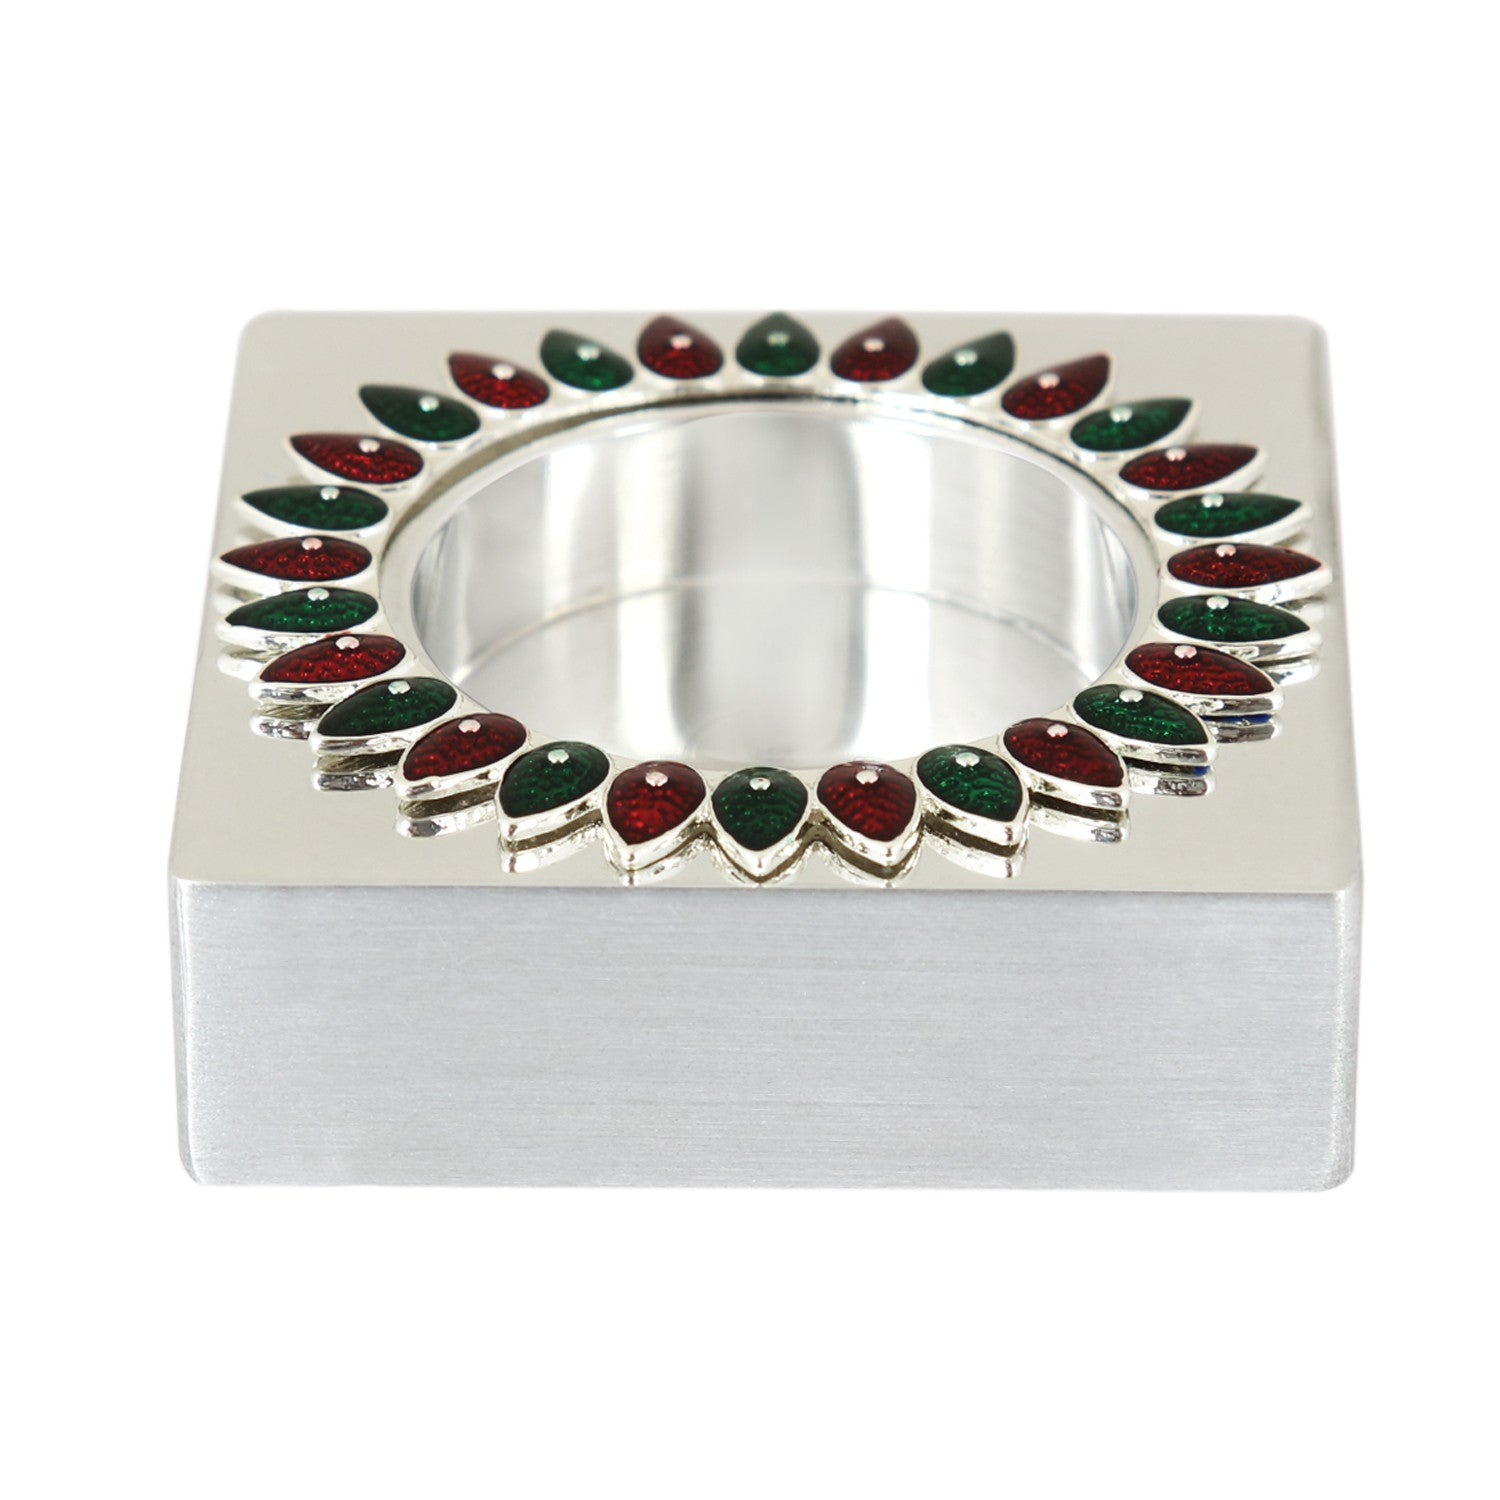 Tlight holder-with small leaf-square-red&green - Barton,Son & Co.